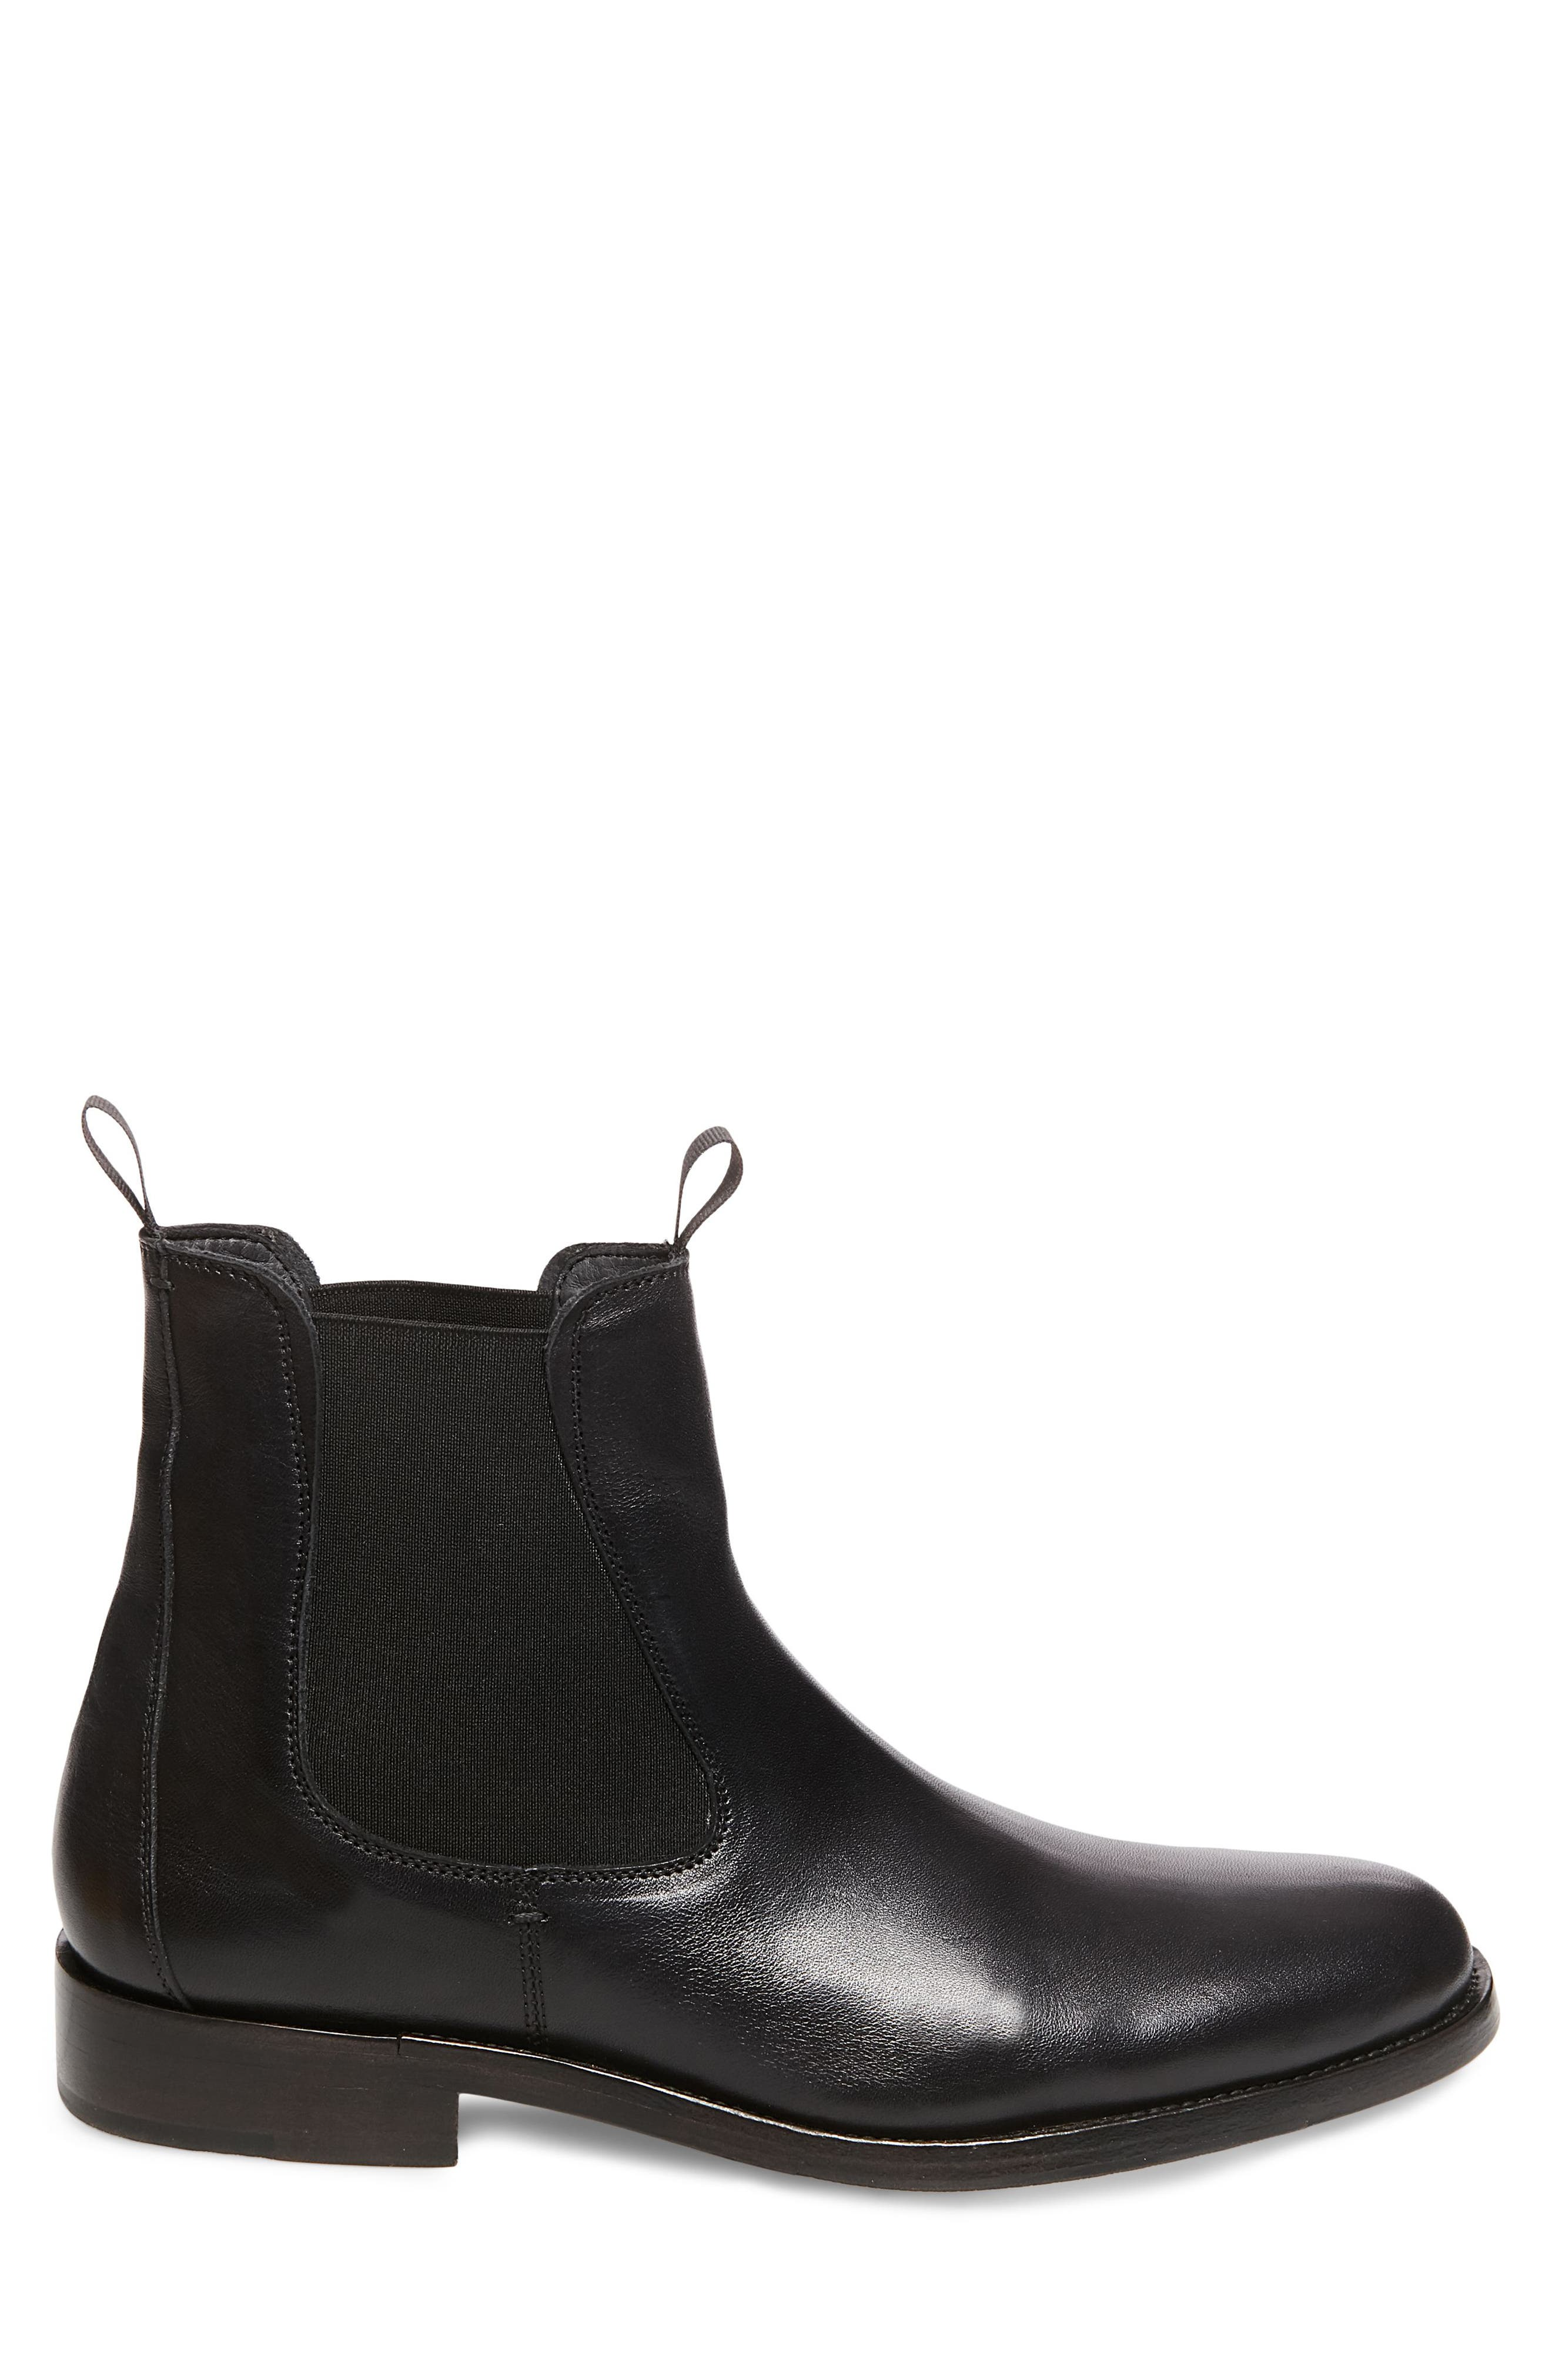 x GQ Nick Chelsea Boot,                             Alternate thumbnail 3, color,                             Black Leather